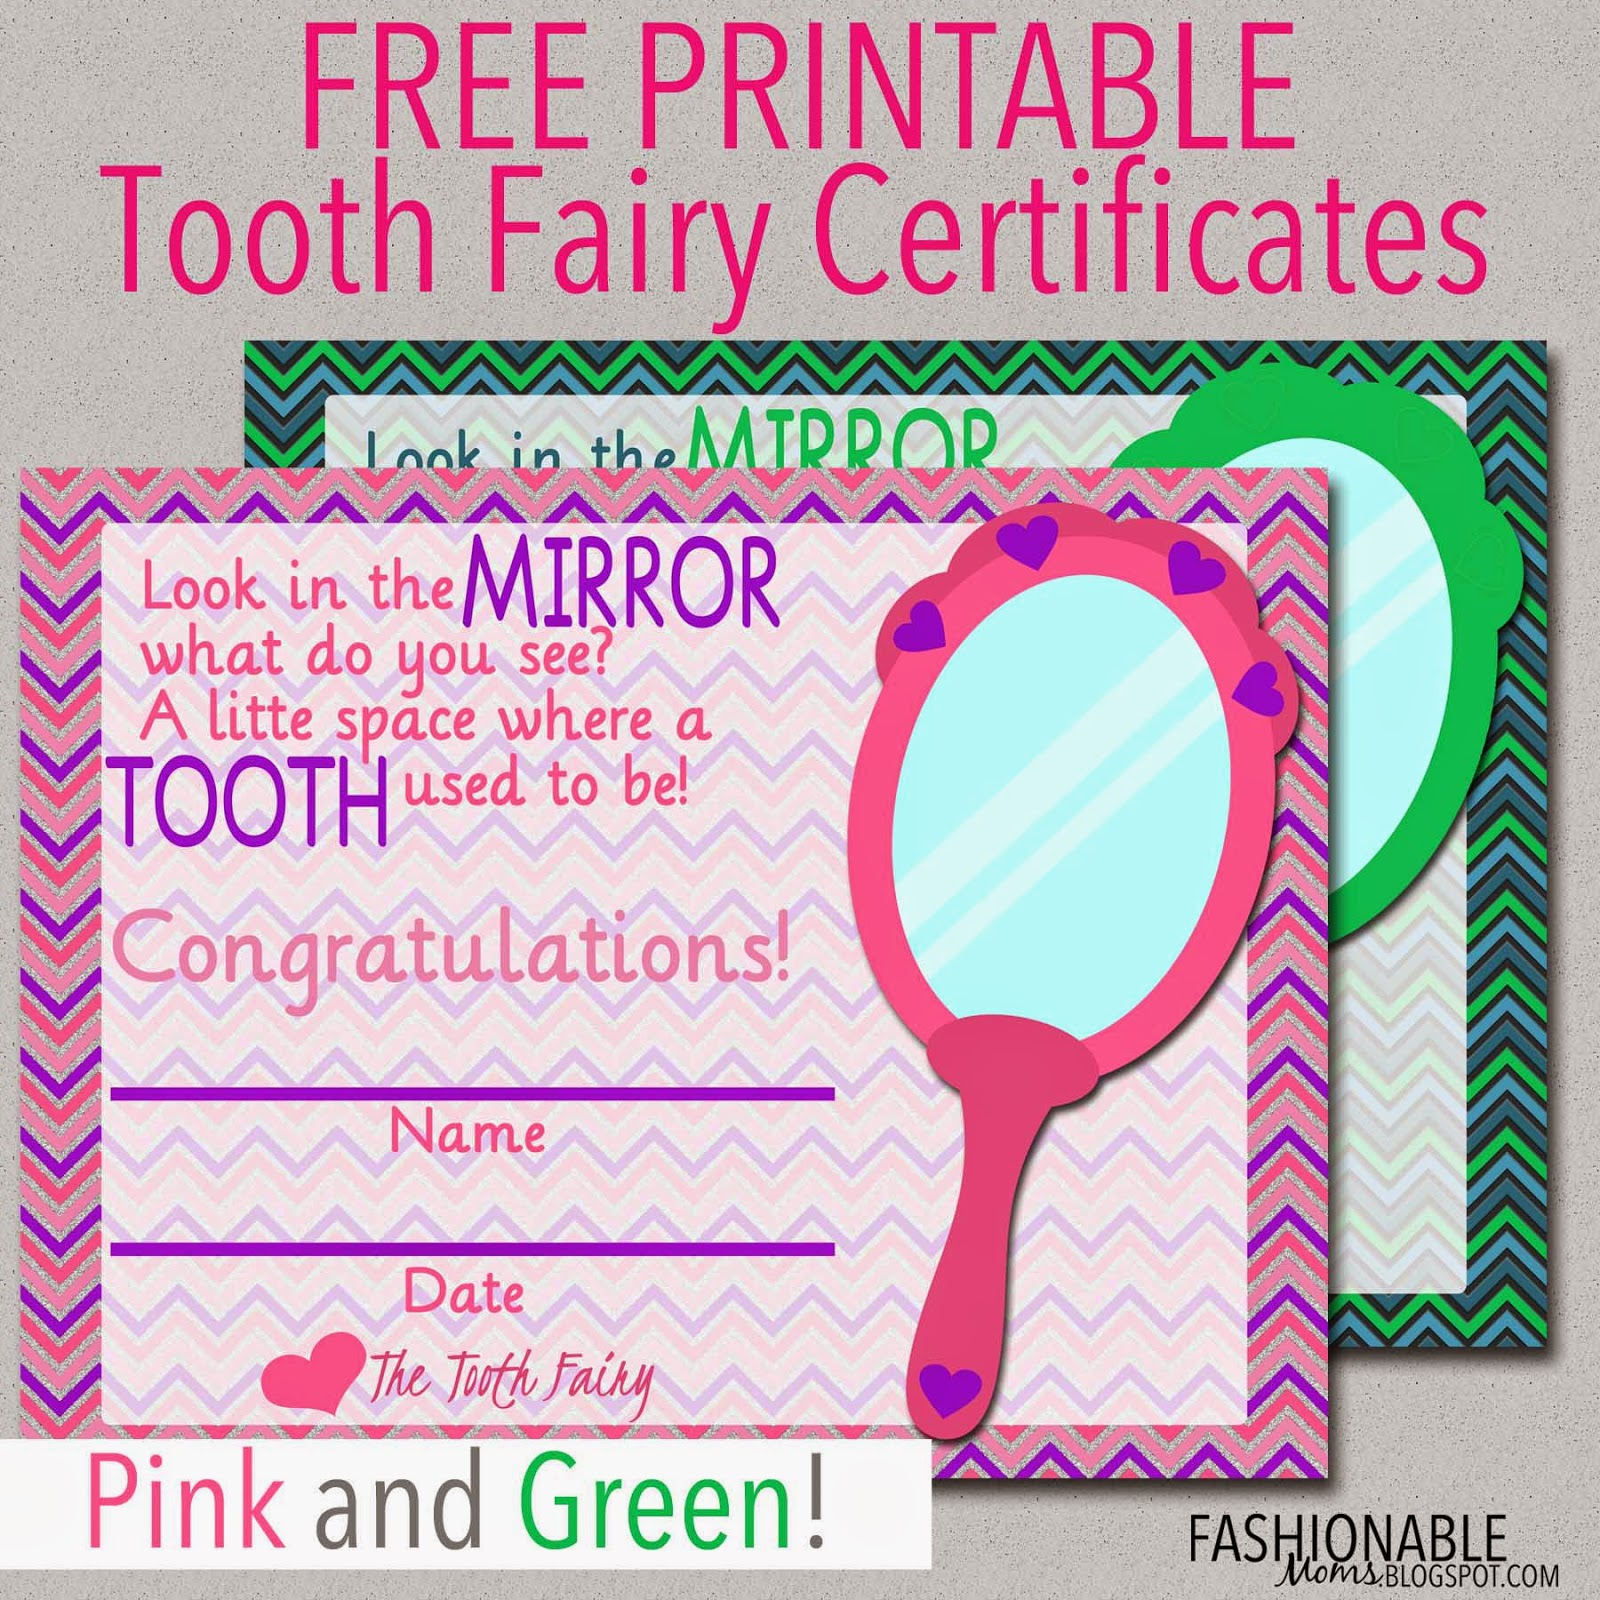 graphic about Free Printable Tooth Fairy Certificate identified as My Modern day Patterns: Absolutely free Printable: Enamel Fairy Certificates